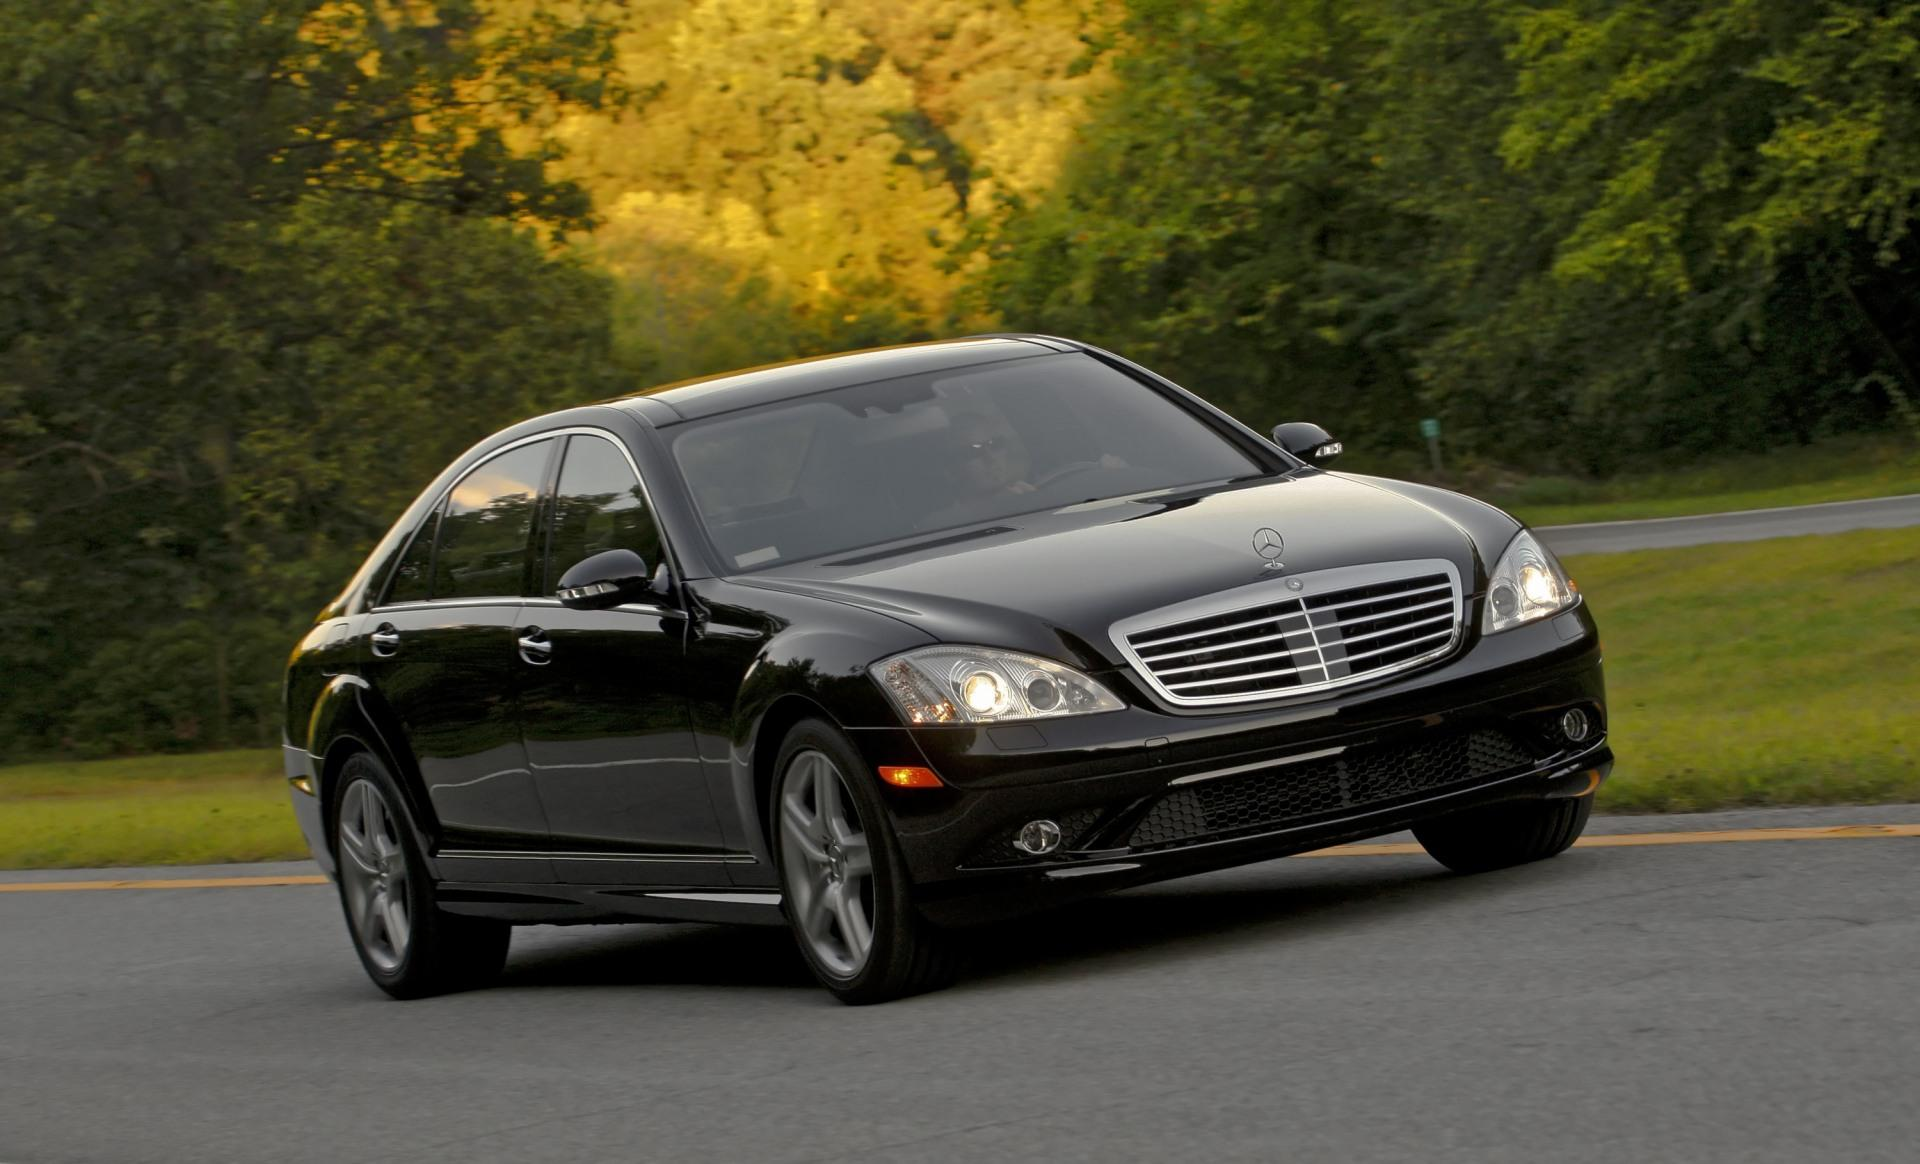 2010 mercedes benz s class images photo 2010 mercedes for 2010 mercedes benz s550